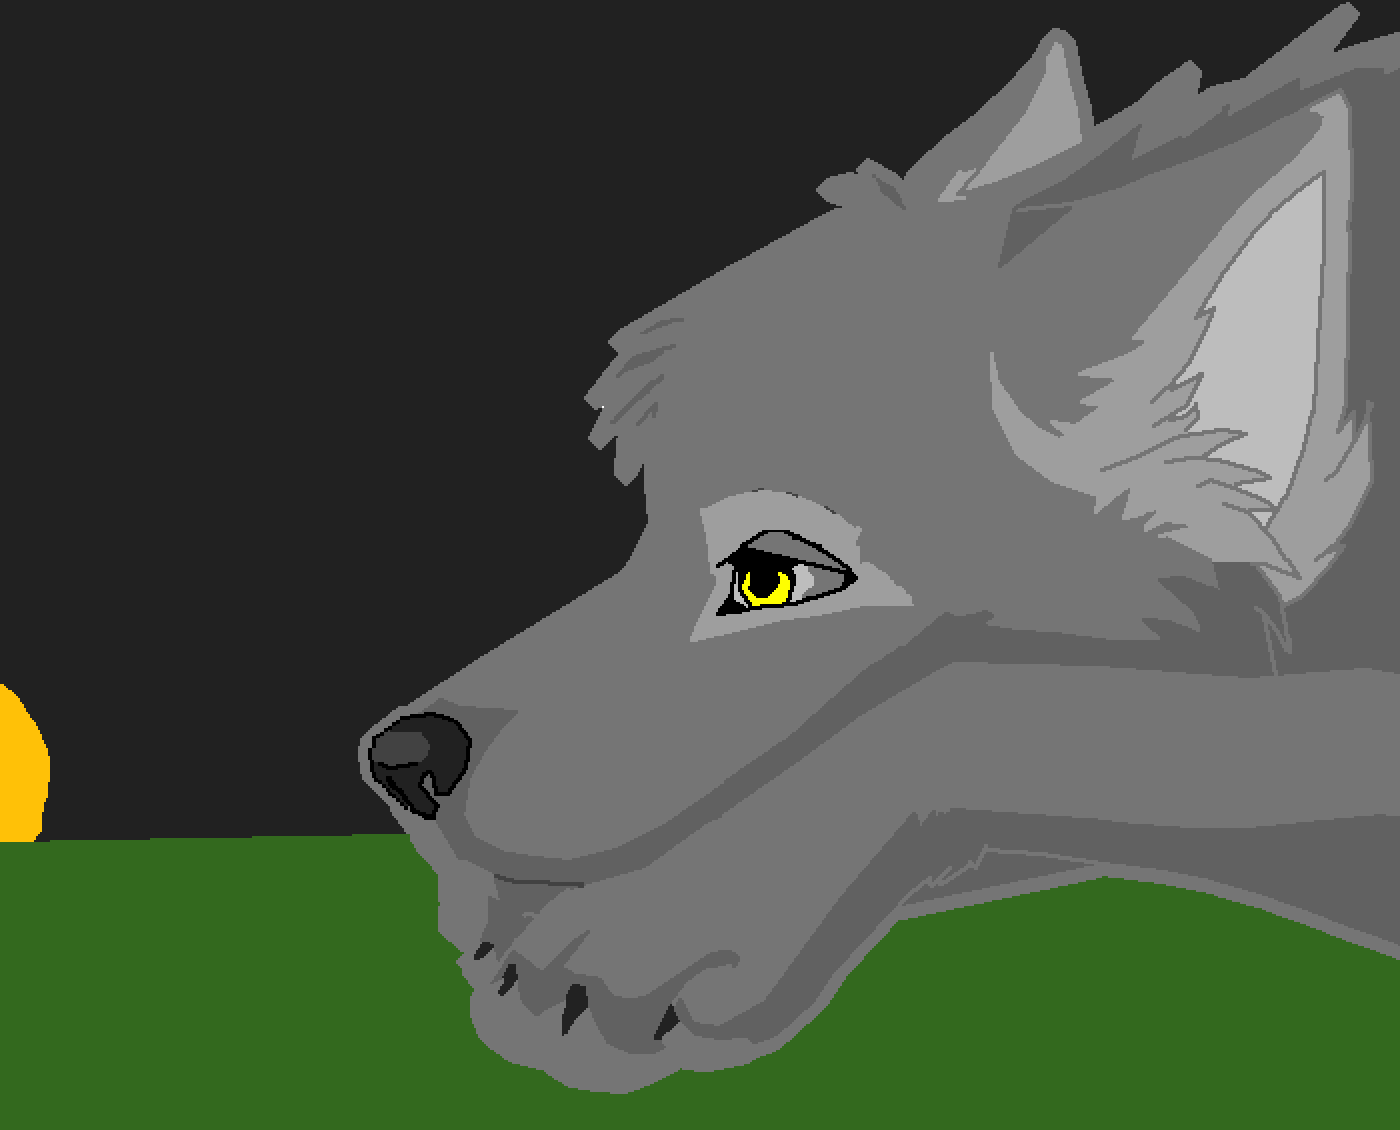 wolf in a cave by scar